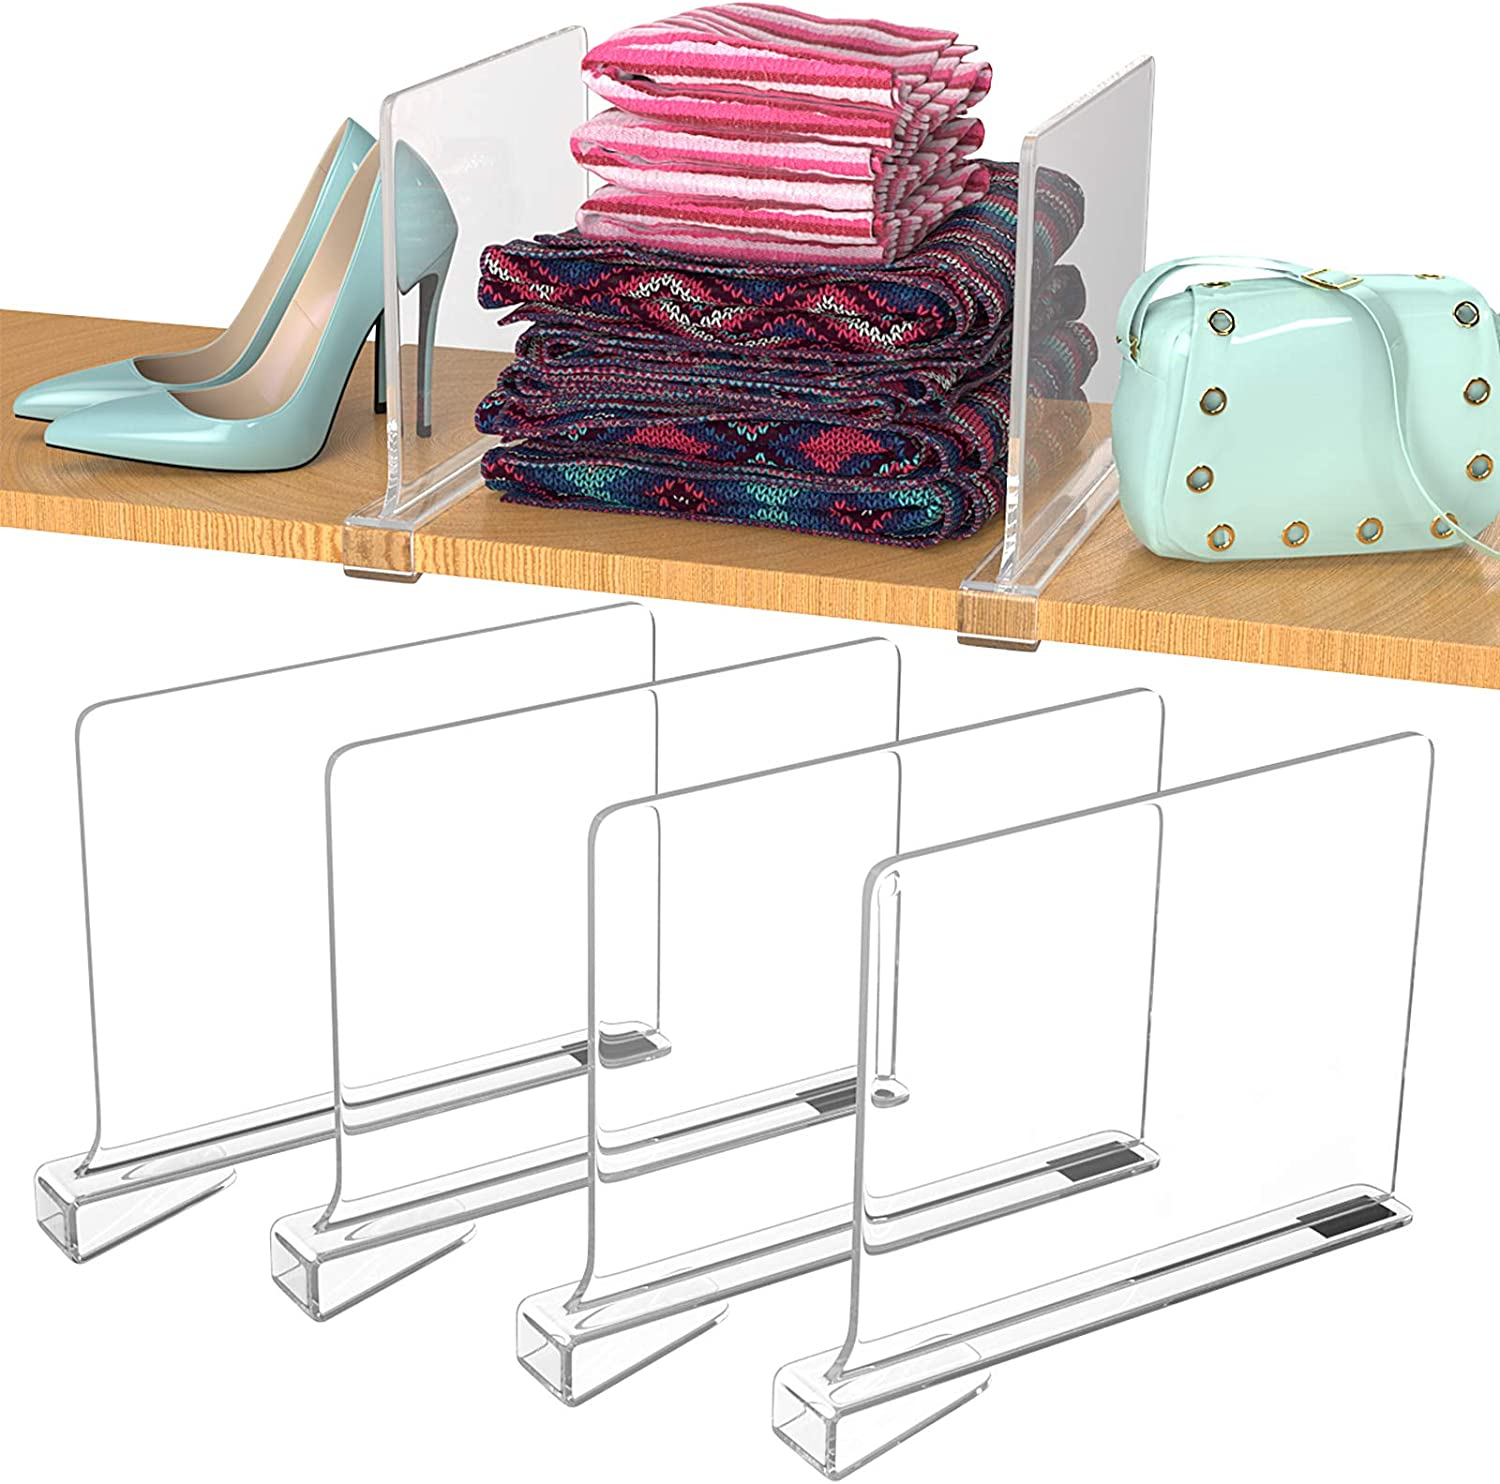 Max 67% OFF 4 Pack Daily bargain sale Closet Shelves Shelf Dividers Acrylic for Clear Closets